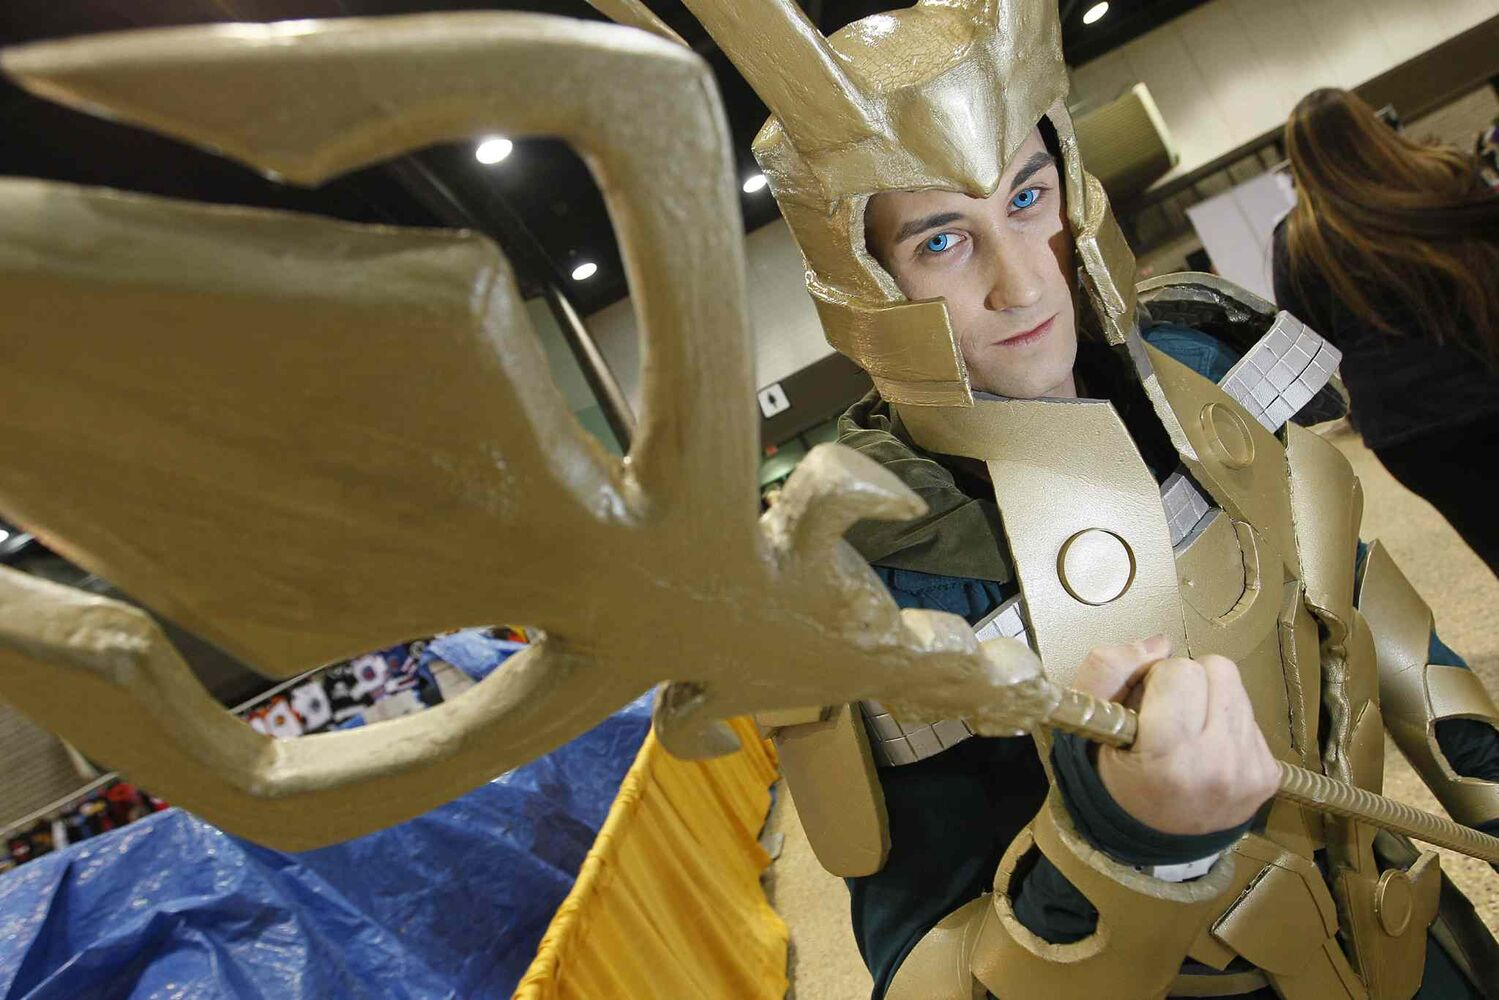 Michael Couchman is dressed as Loki at the opening day of C4. (John Woods / Winnipeg Free Press)